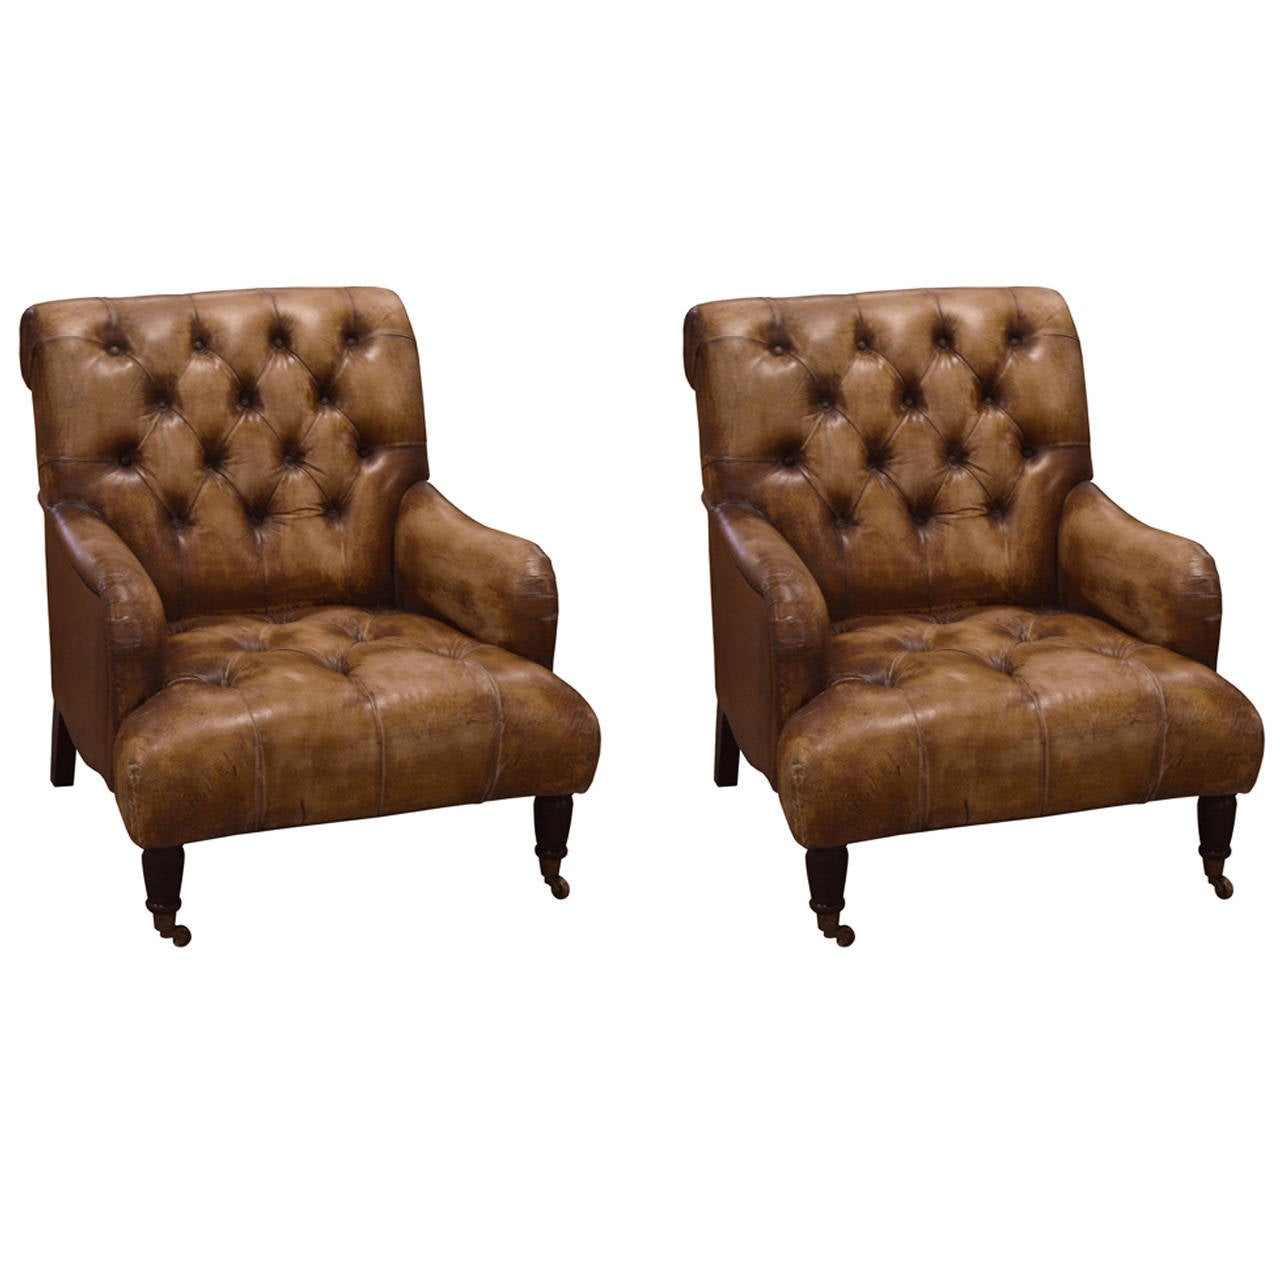 Pair of english library chairs in distressed leather at 1stdibs - Library lounge chairs ...